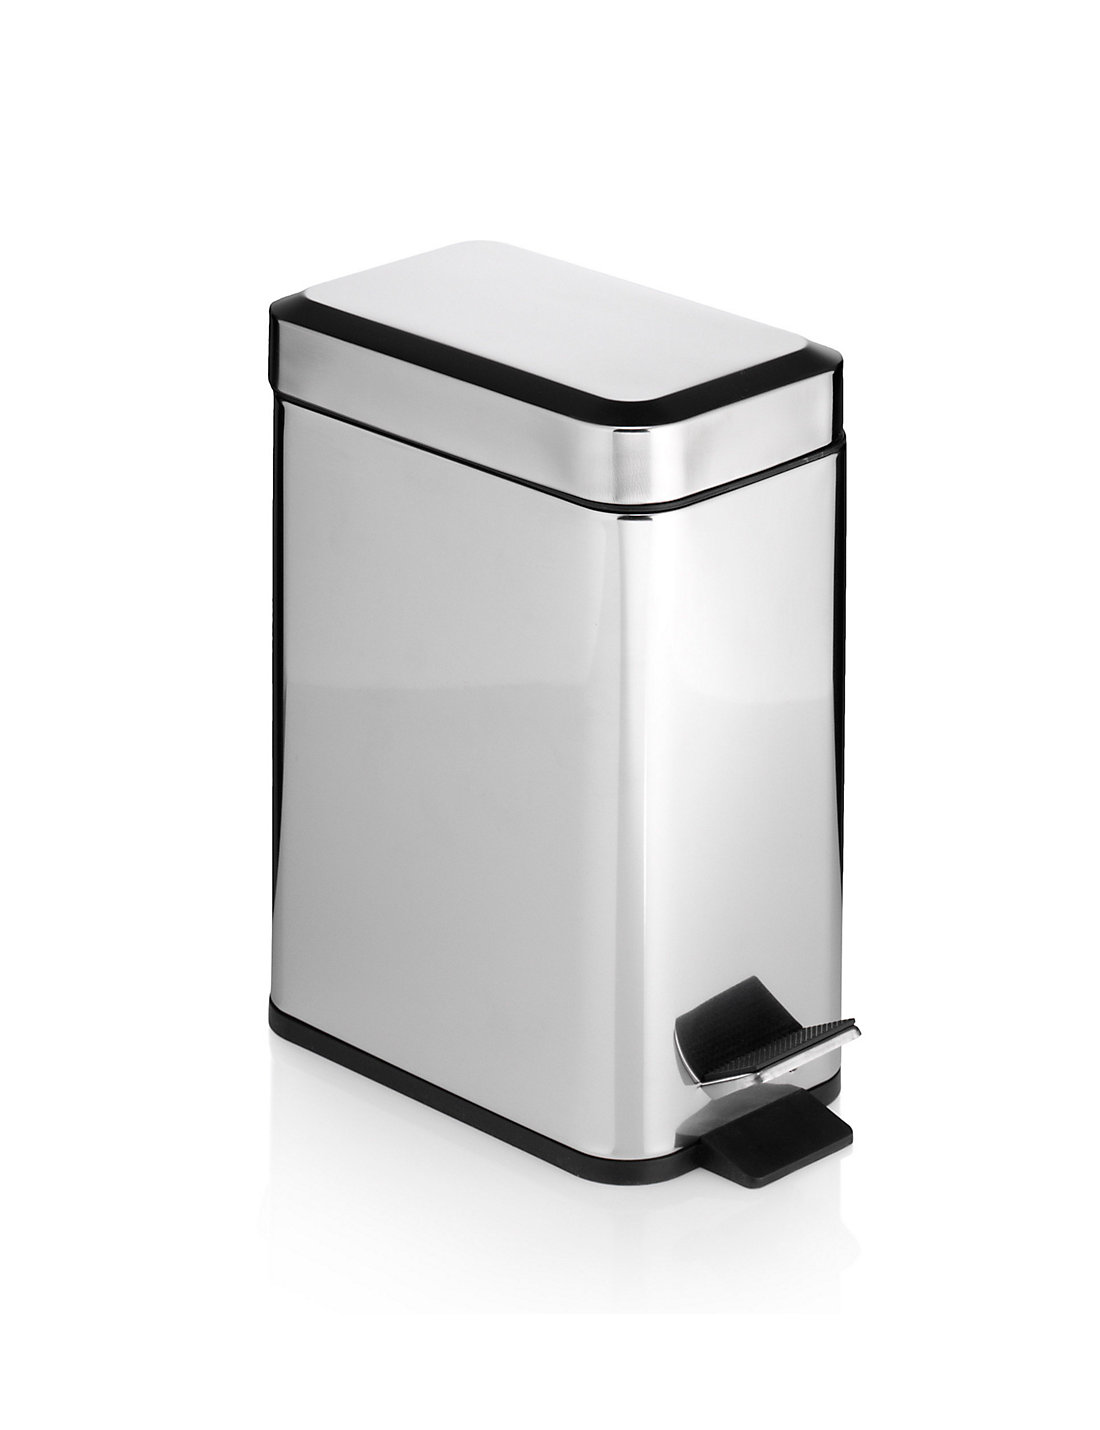 White Bathroom Bin bathroom bins | waste & pedal bathroom bins | m&s